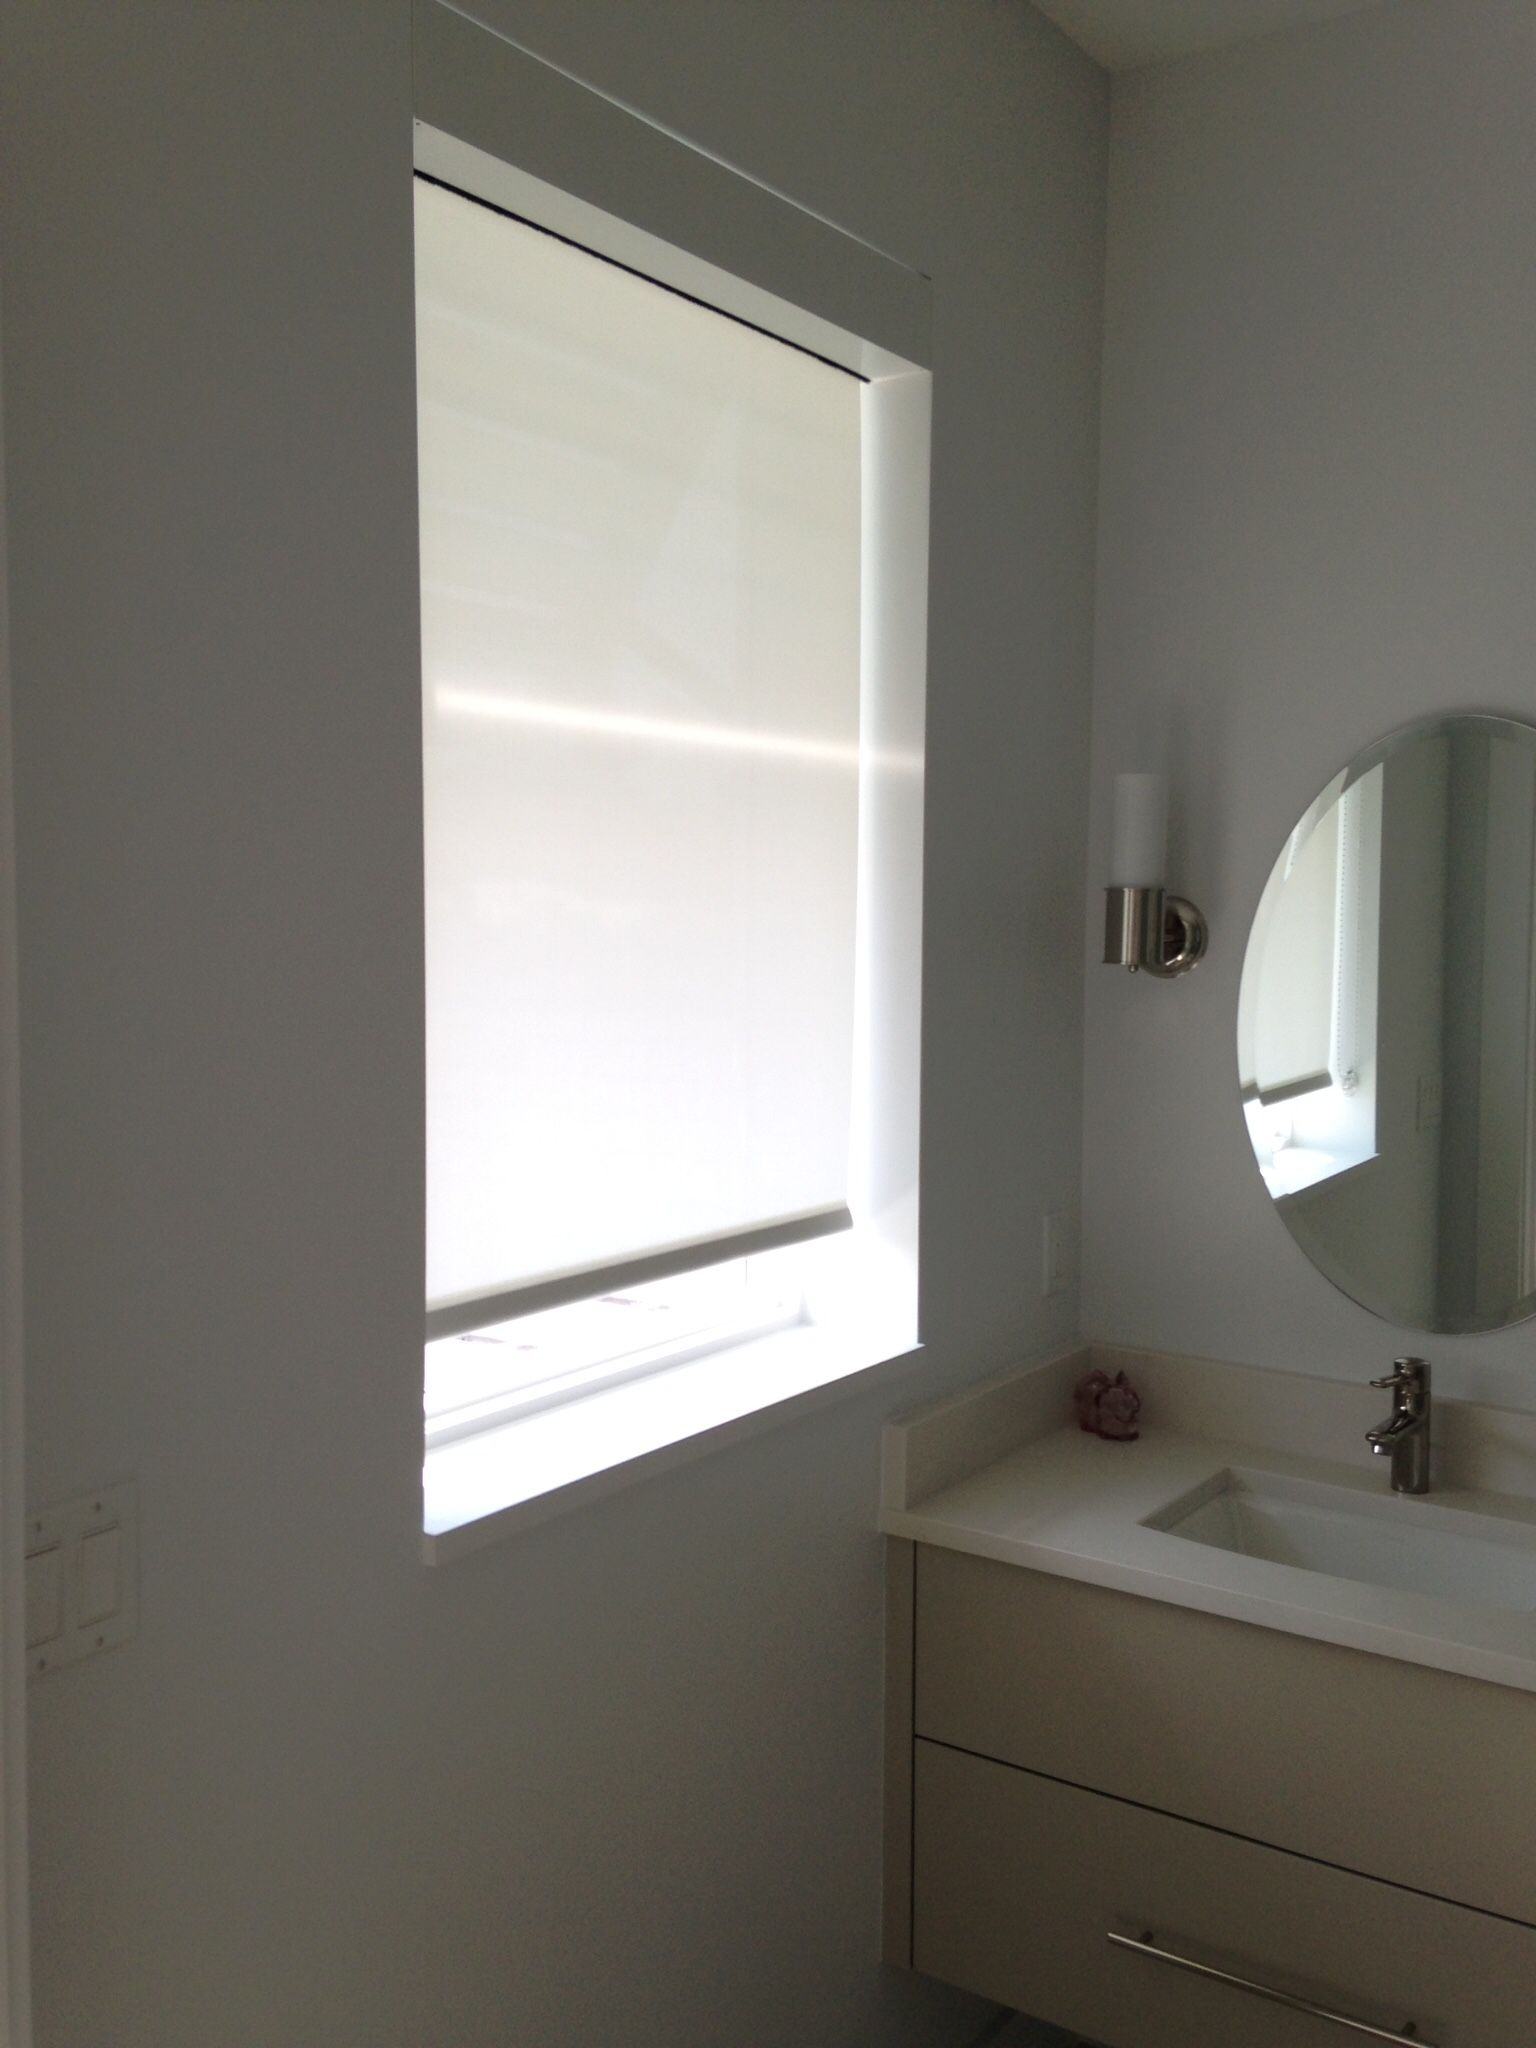 Motorized Shade In Bathroom Window